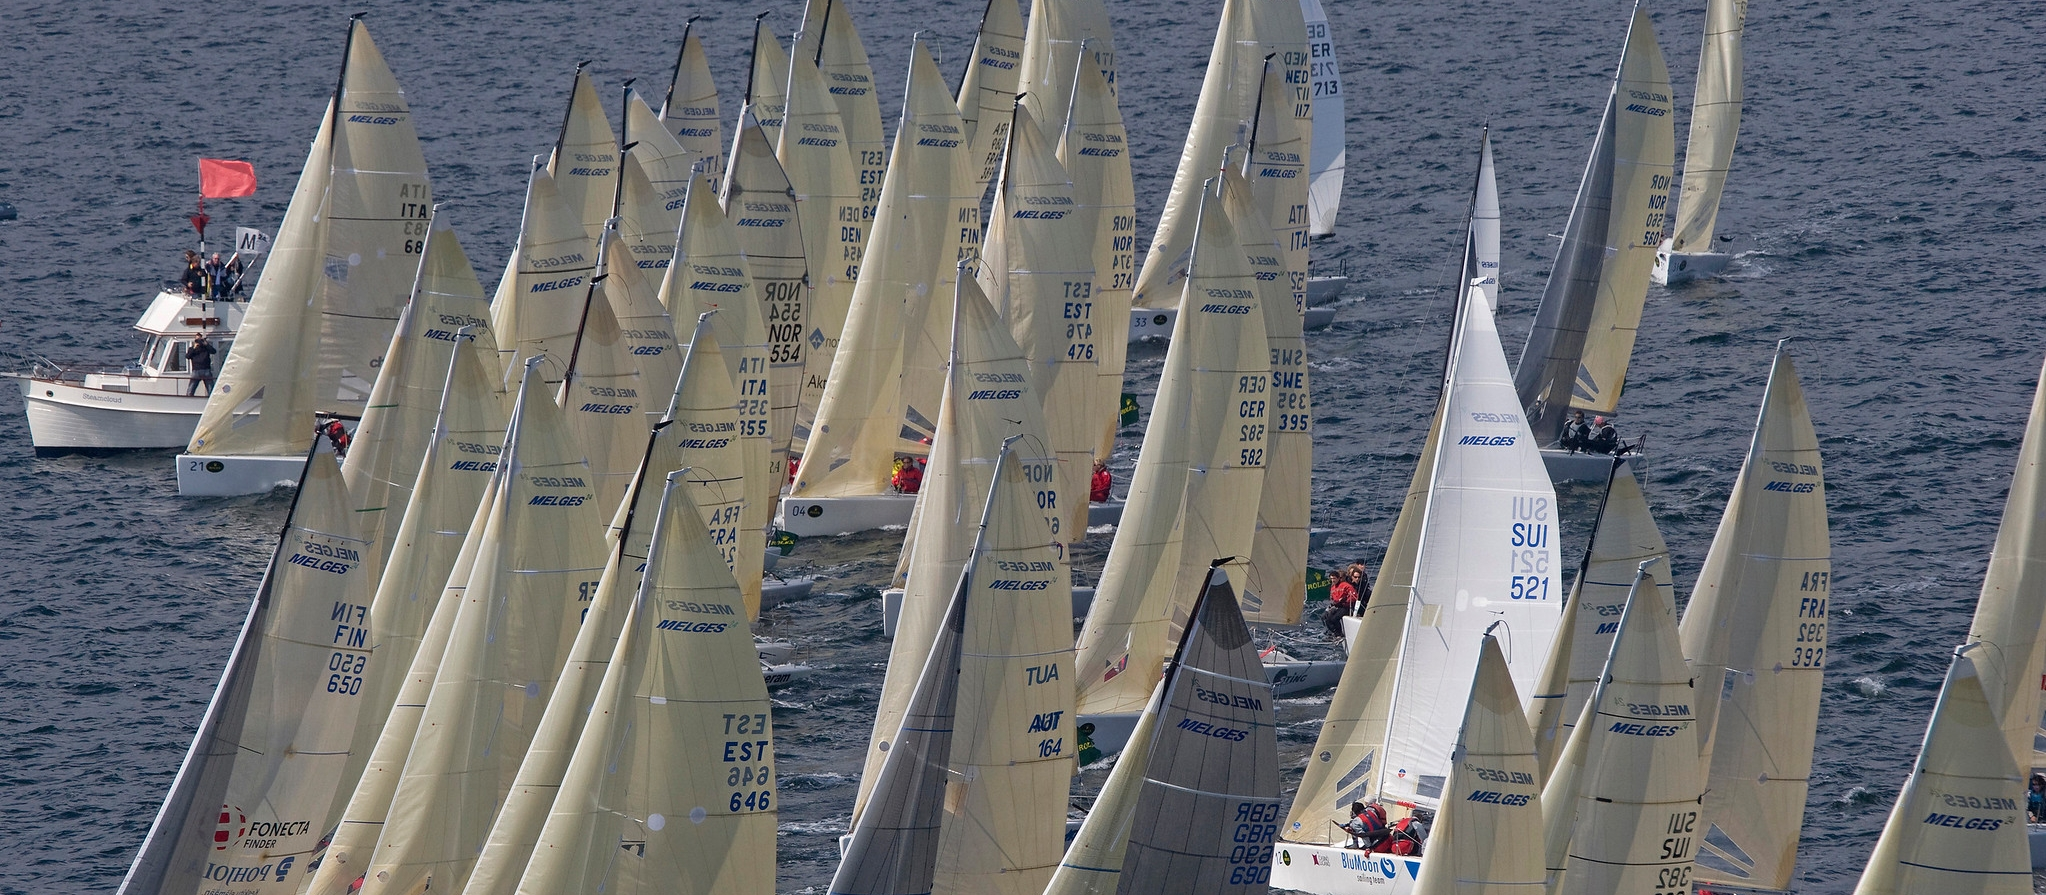 2007 Melges 24 European Championship held in association with Rolex Baltic Week in Neustadt, Germany